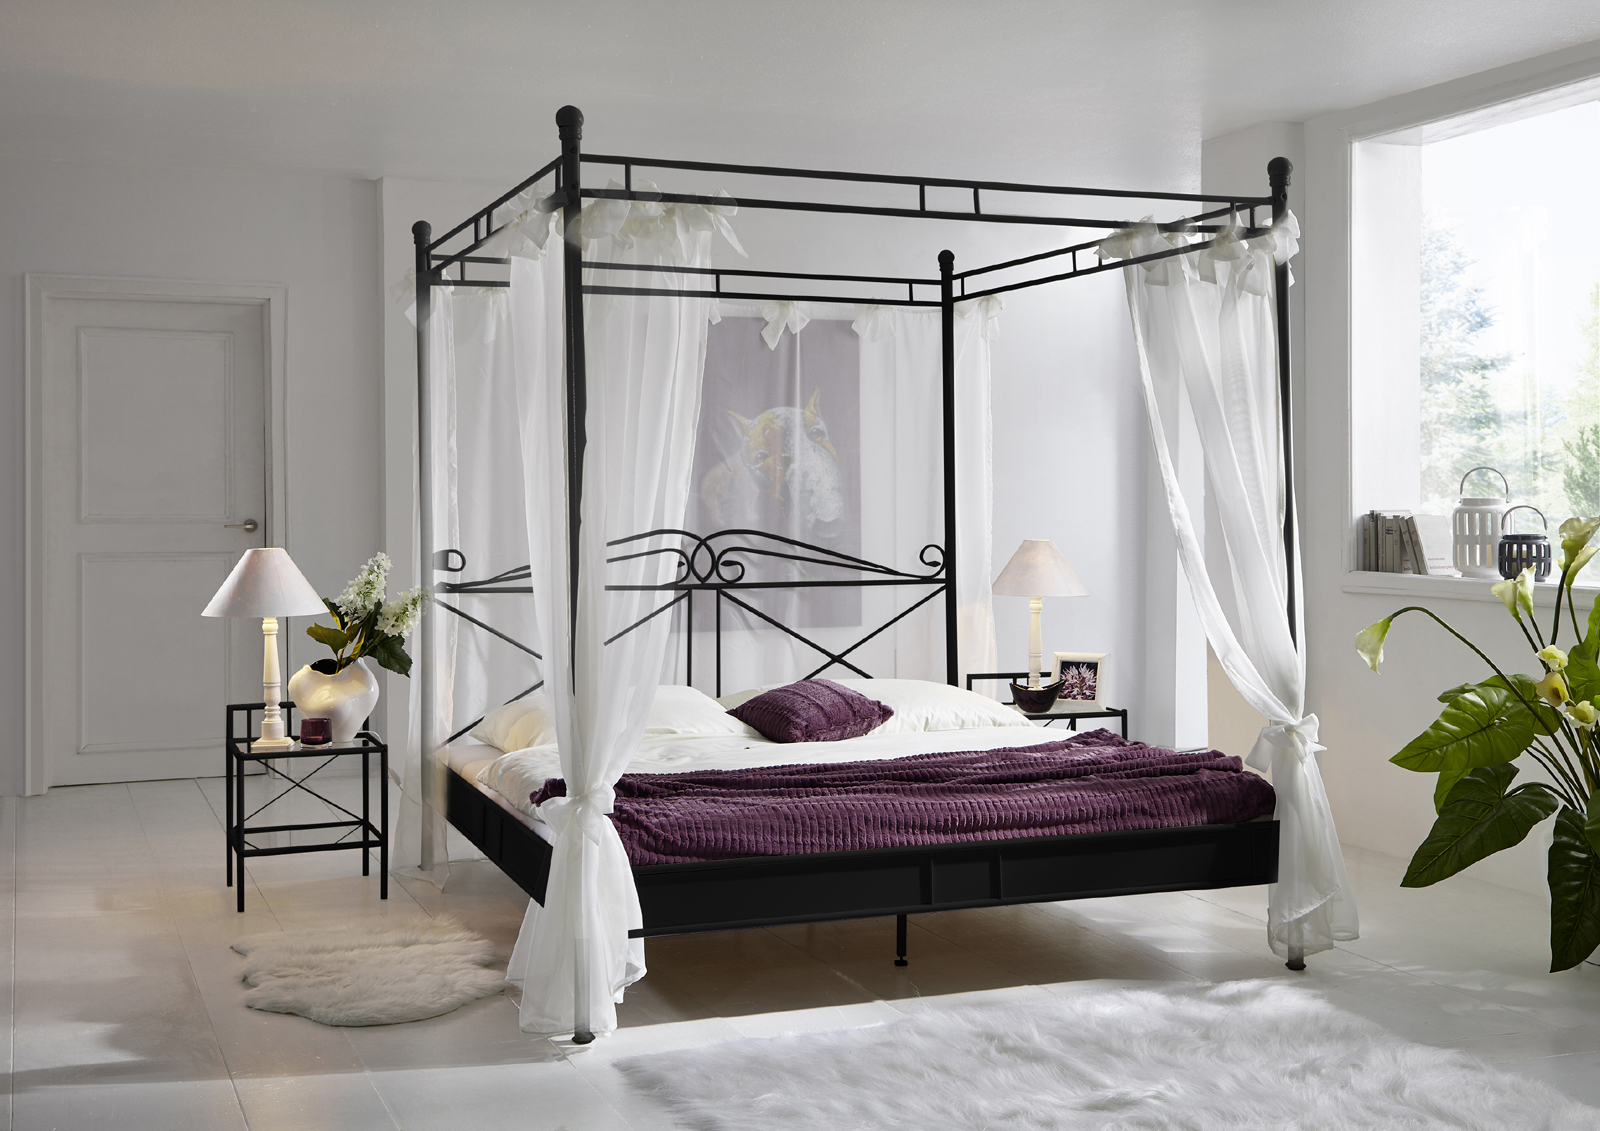 sam design himmelbett 140 cm schwarz venezia bestellware. Black Bedroom Furniture Sets. Home Design Ideas